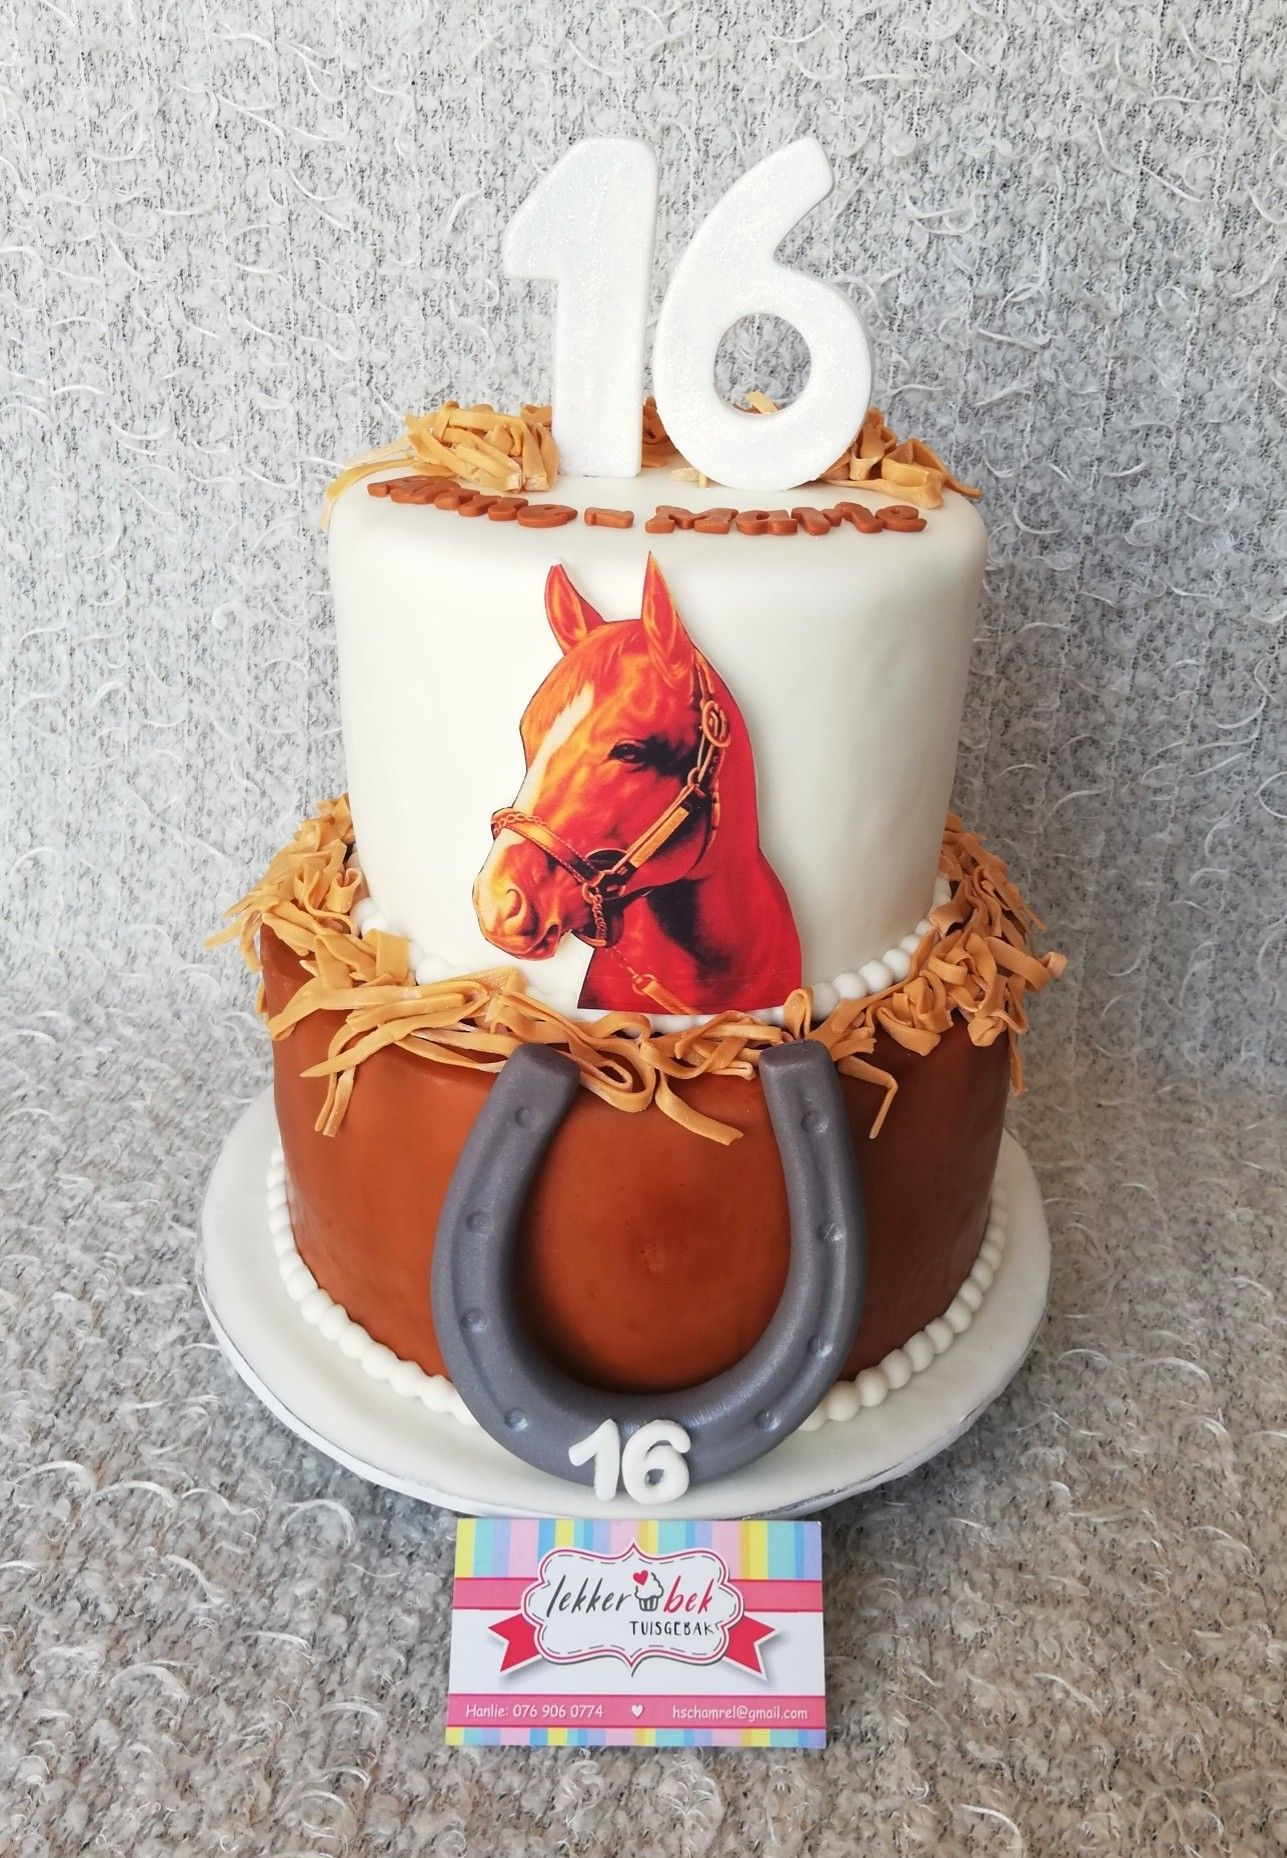 2 Tier Birthday Cake With Horse Picture And Fondant Horse